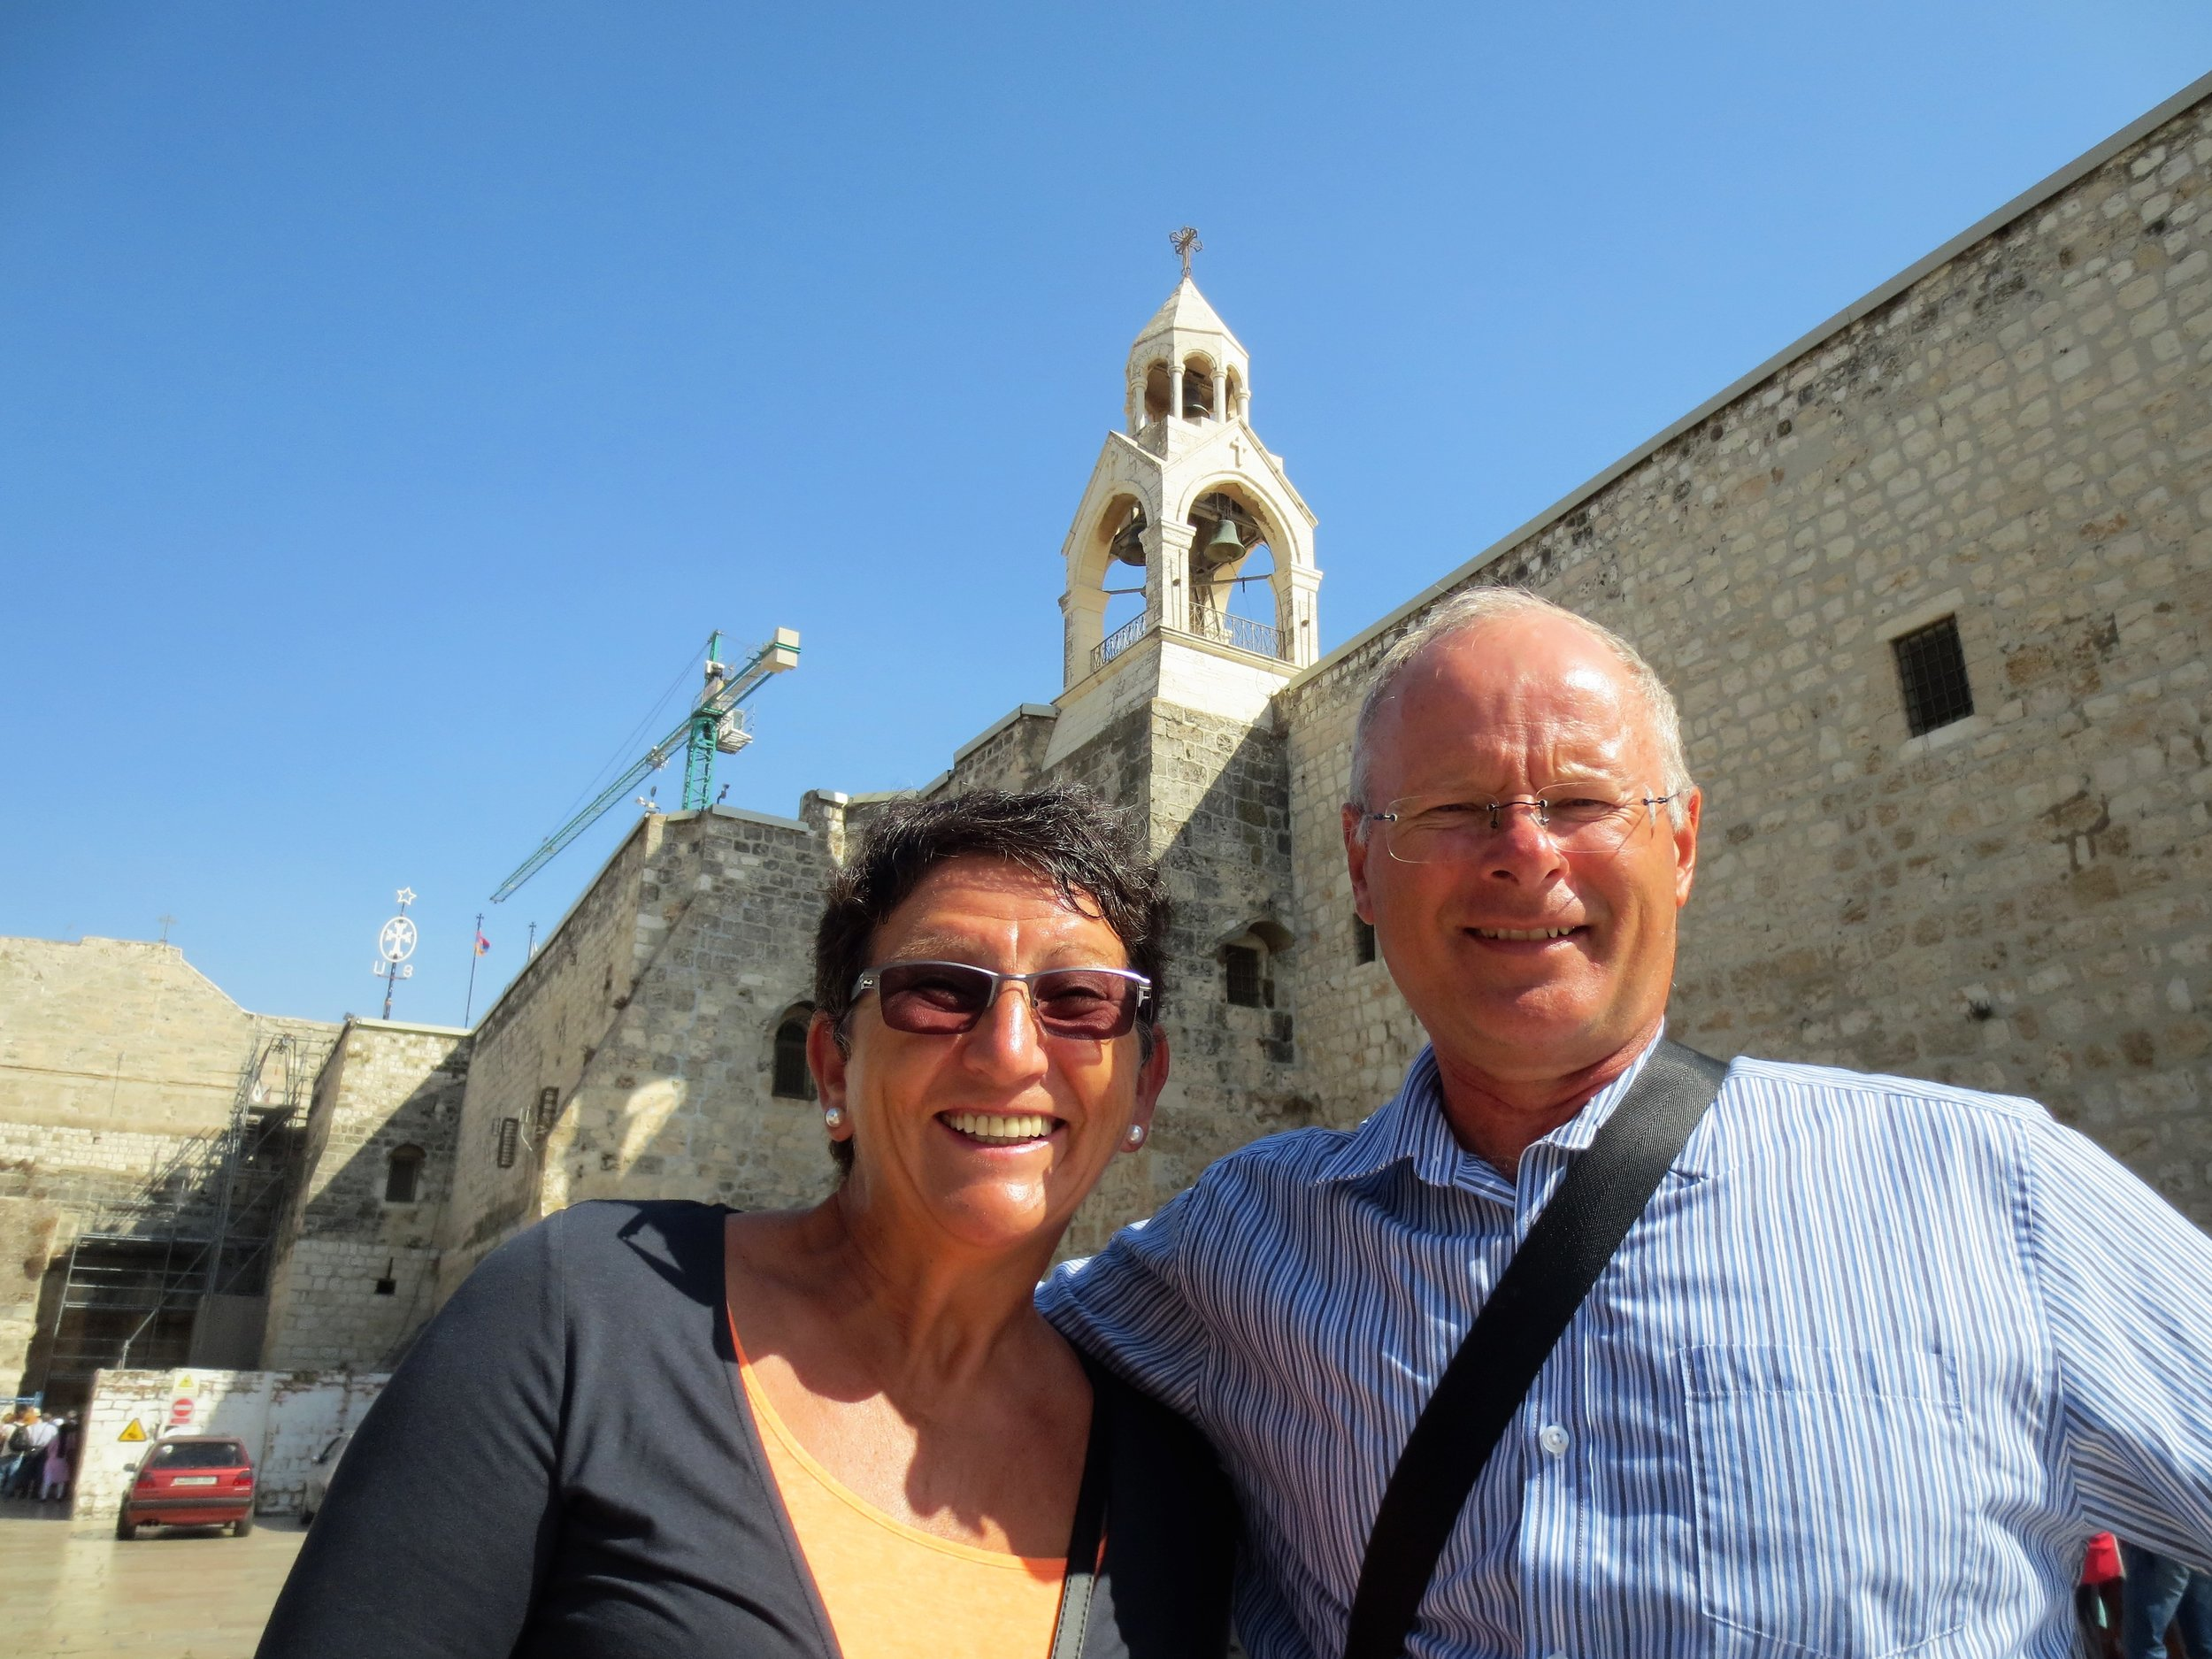 Francien and Frank in front of the Nativity Church, Bethlehem on the West Bank. This area is administrated by the Palestinian authorities.